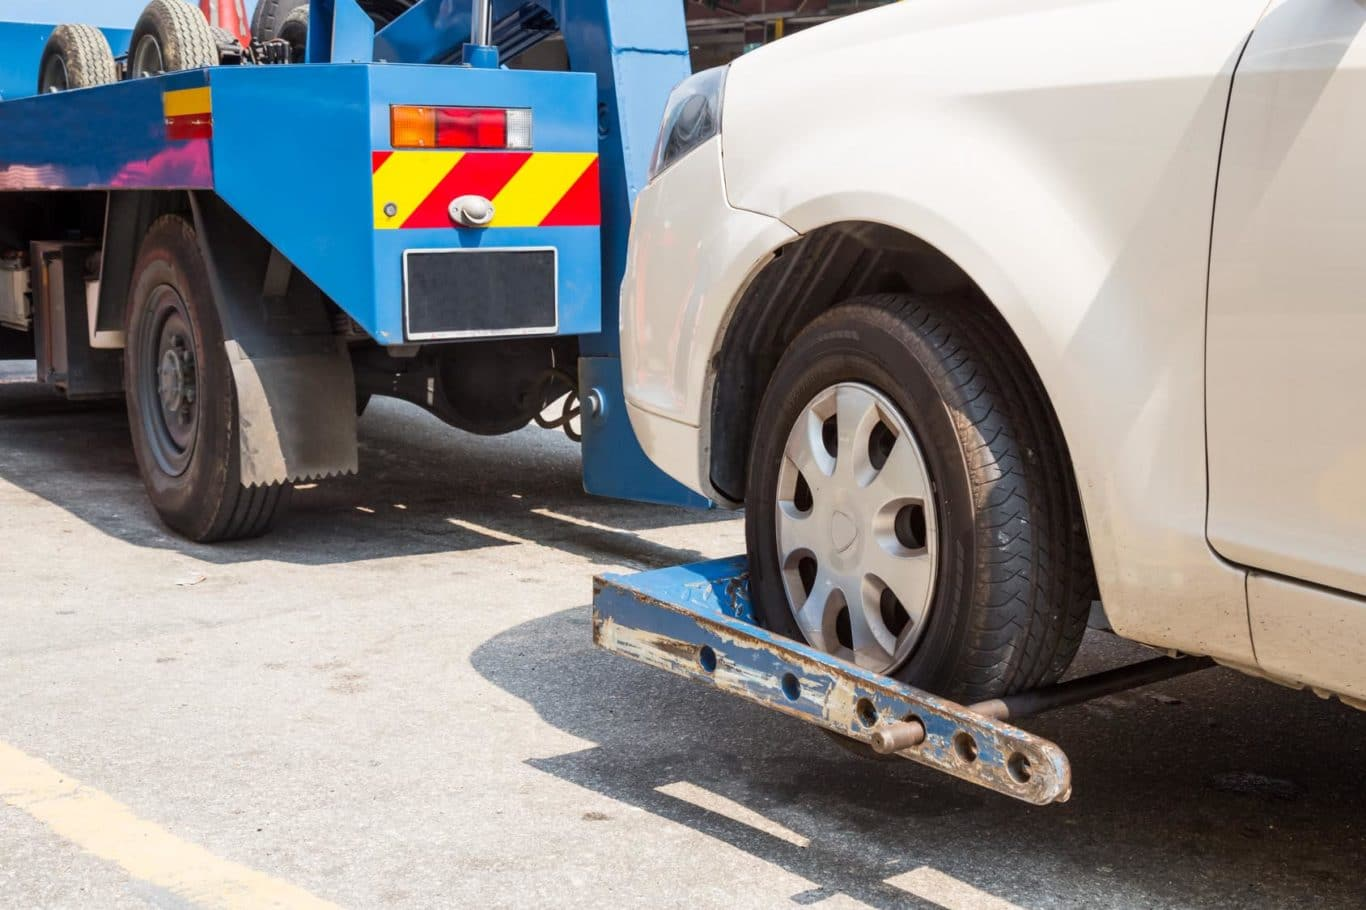 Aughrim, County Wicklow expert Car Recovery services